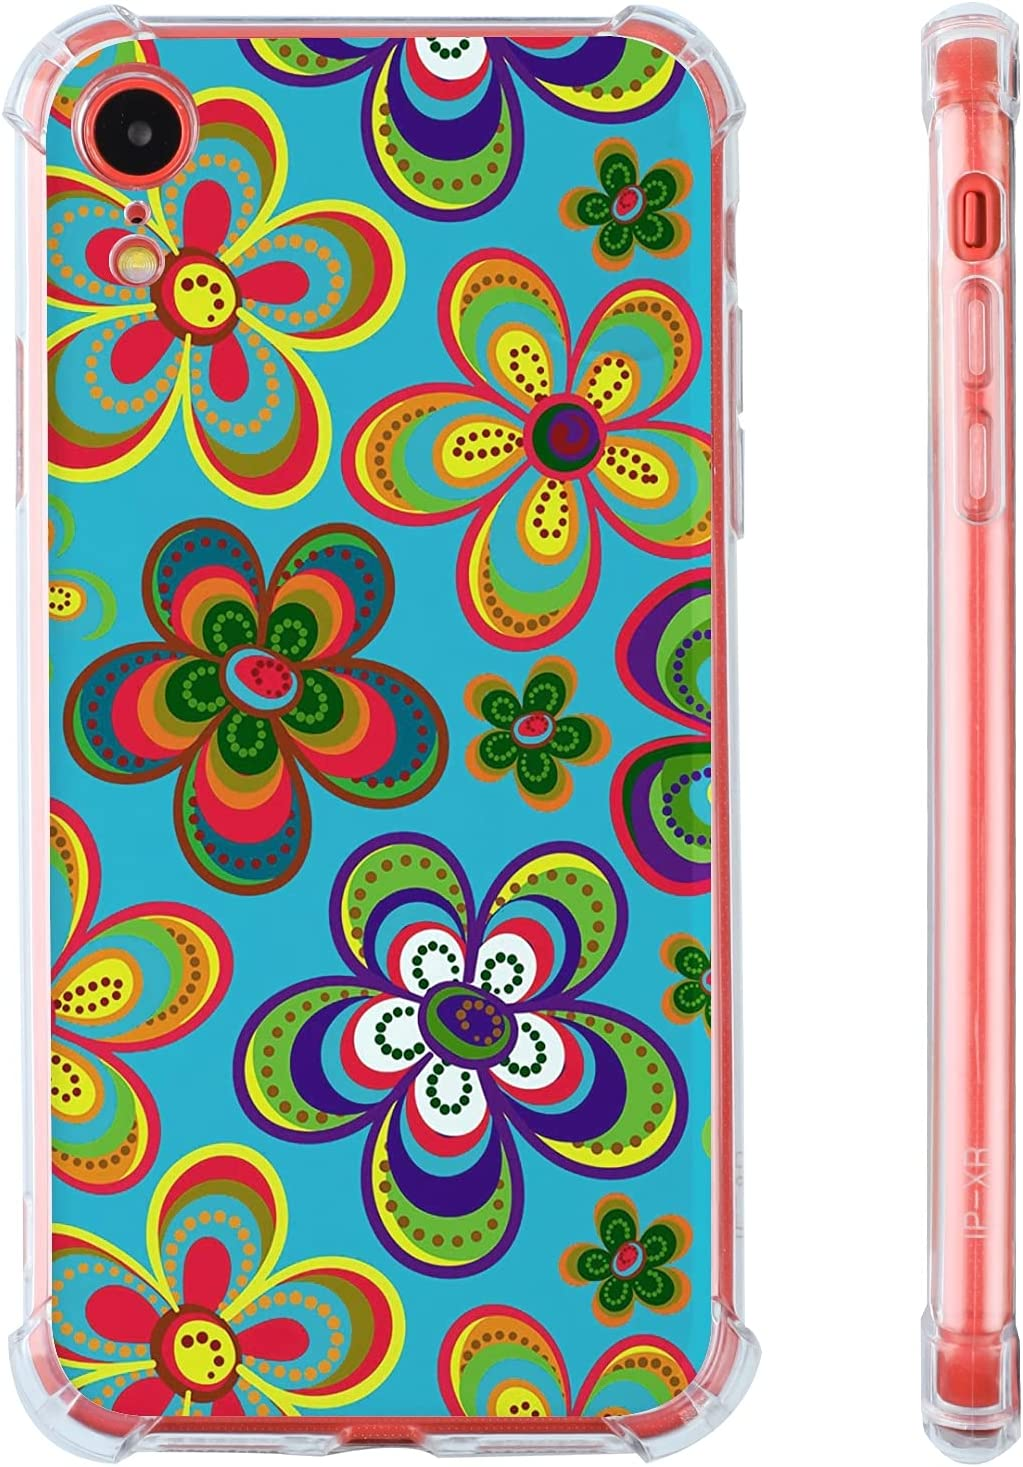 Hippie Flowers iPhone XR Case,Cute Hippie Flowers 60s 70s Colorful Psychedelic Tie Dye iPhone XR Case with for Women/Girl,Soft TPU Bumper Cool Trendy Cover Case for Apple iPhone